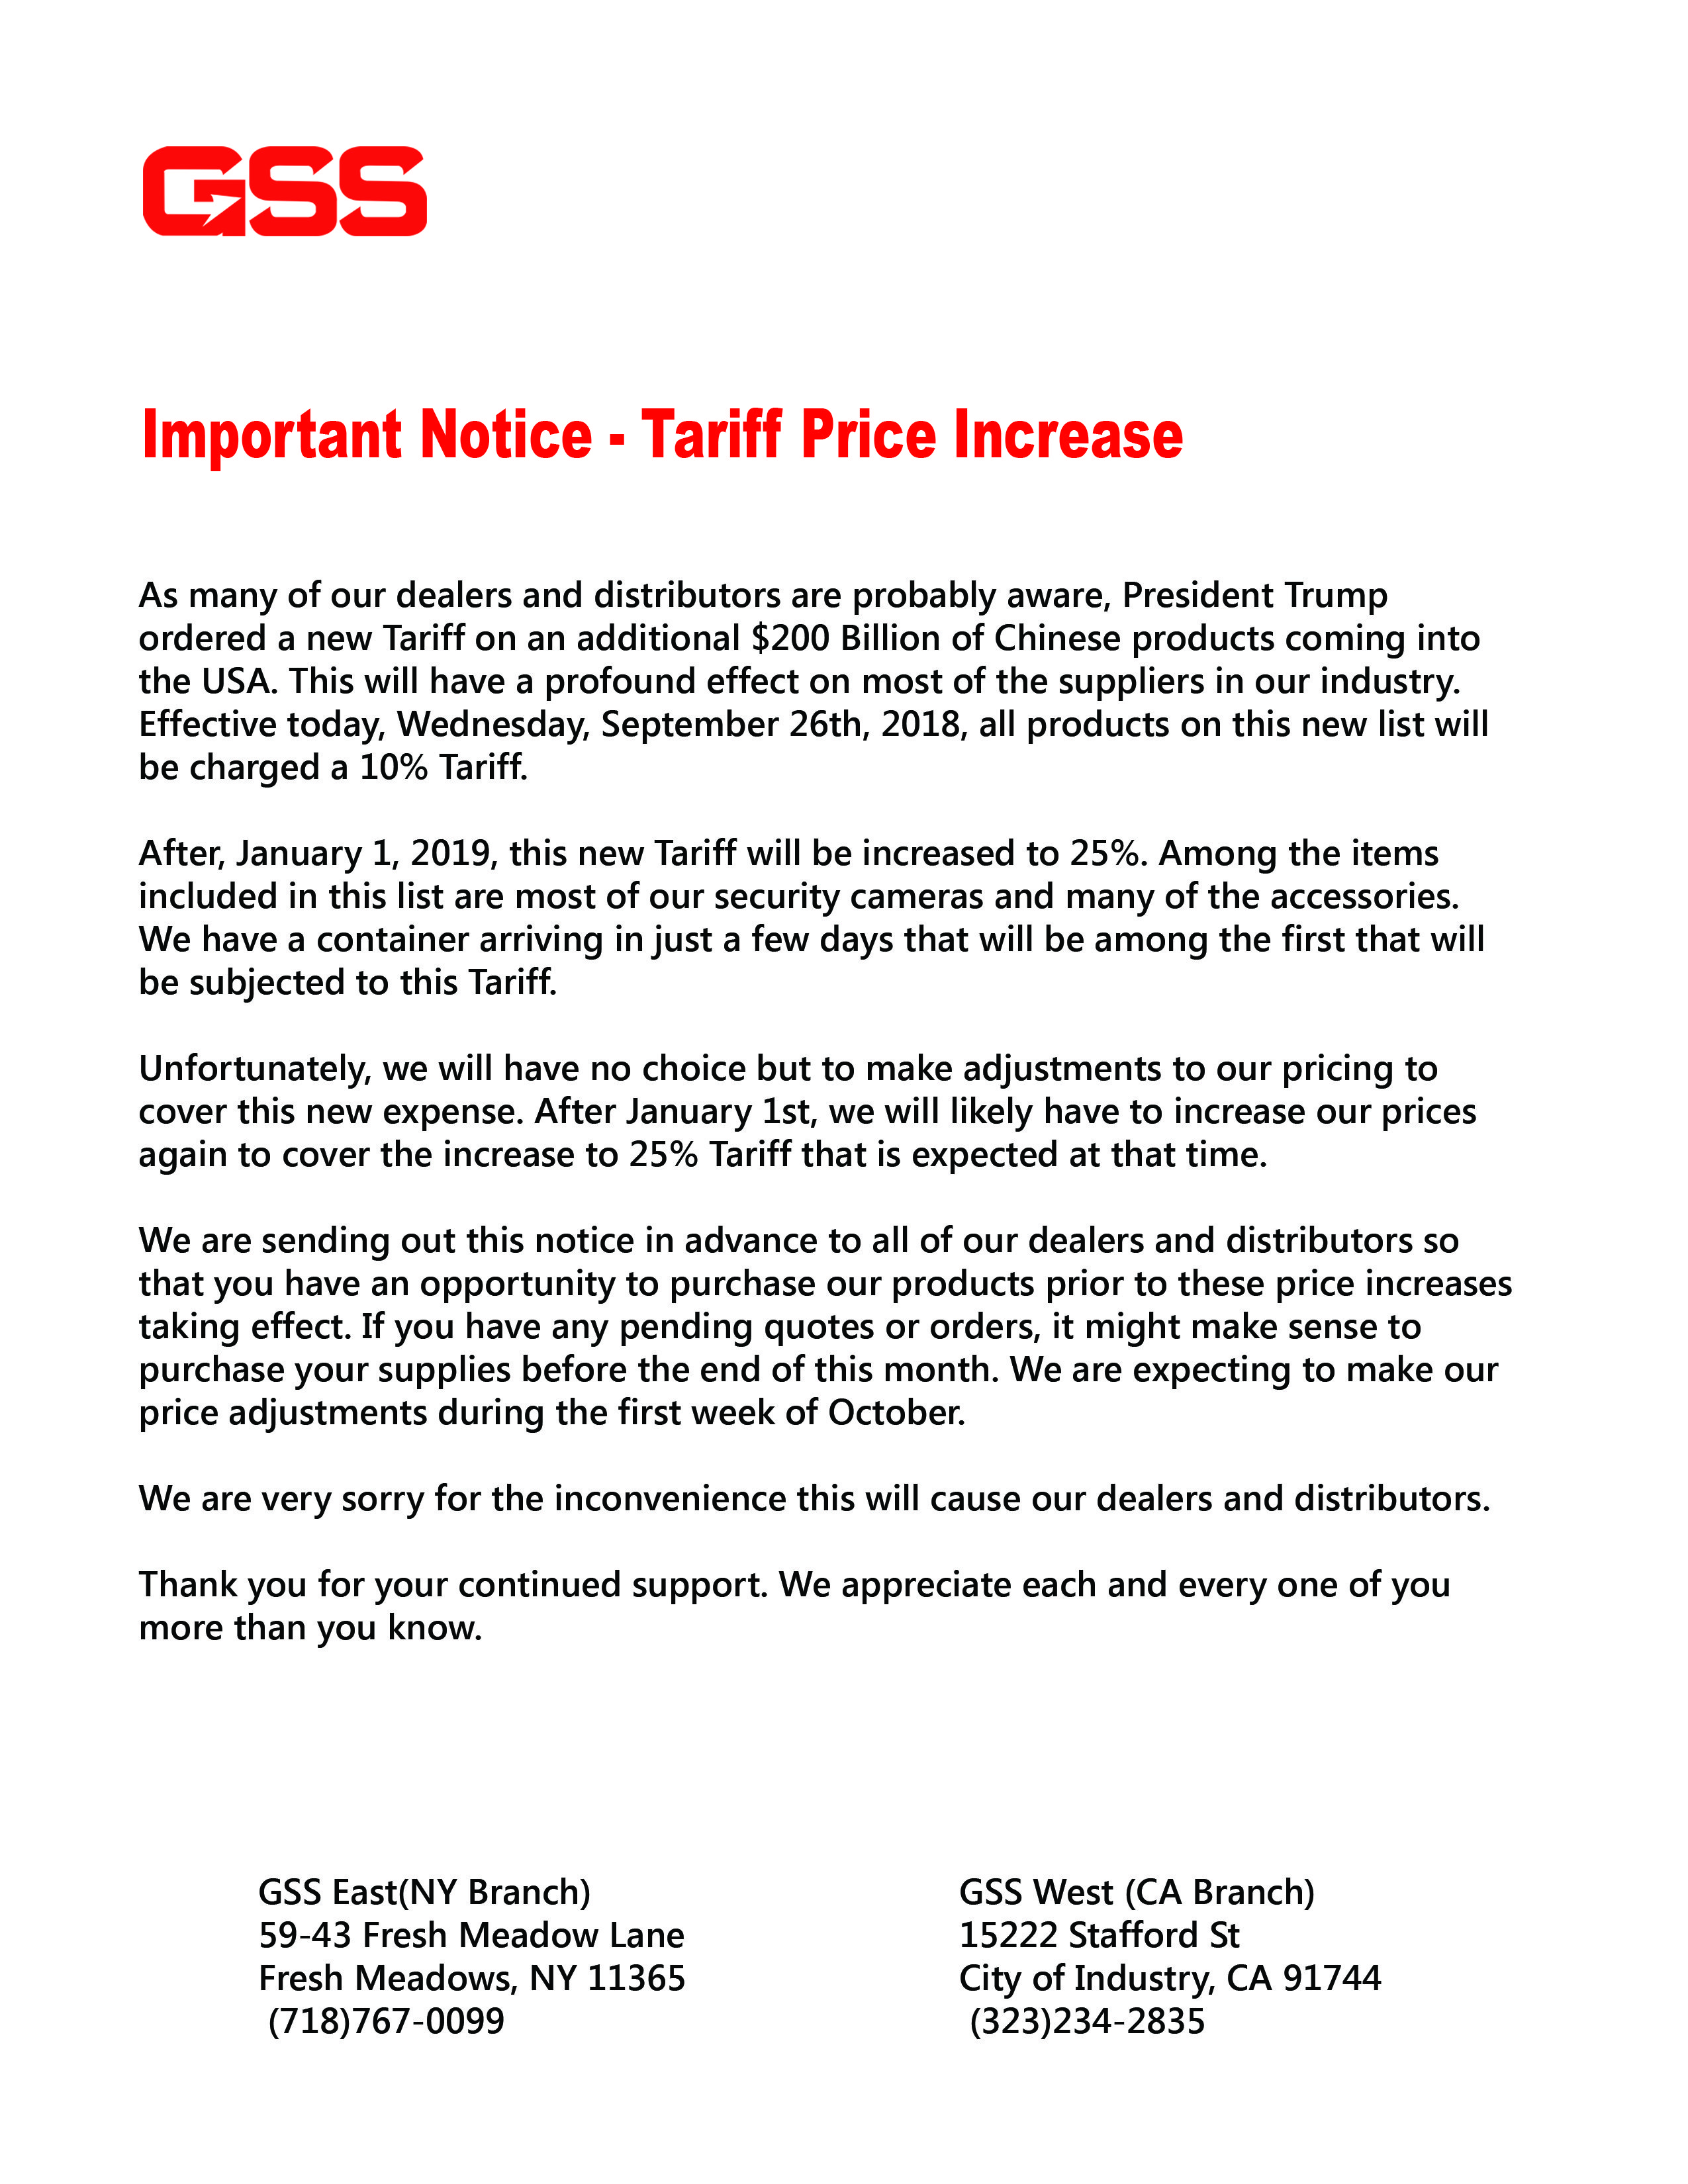 c482d1083 Hikvision OEM Price Increase Email Notice! Did We Finally Hit The Bottom?